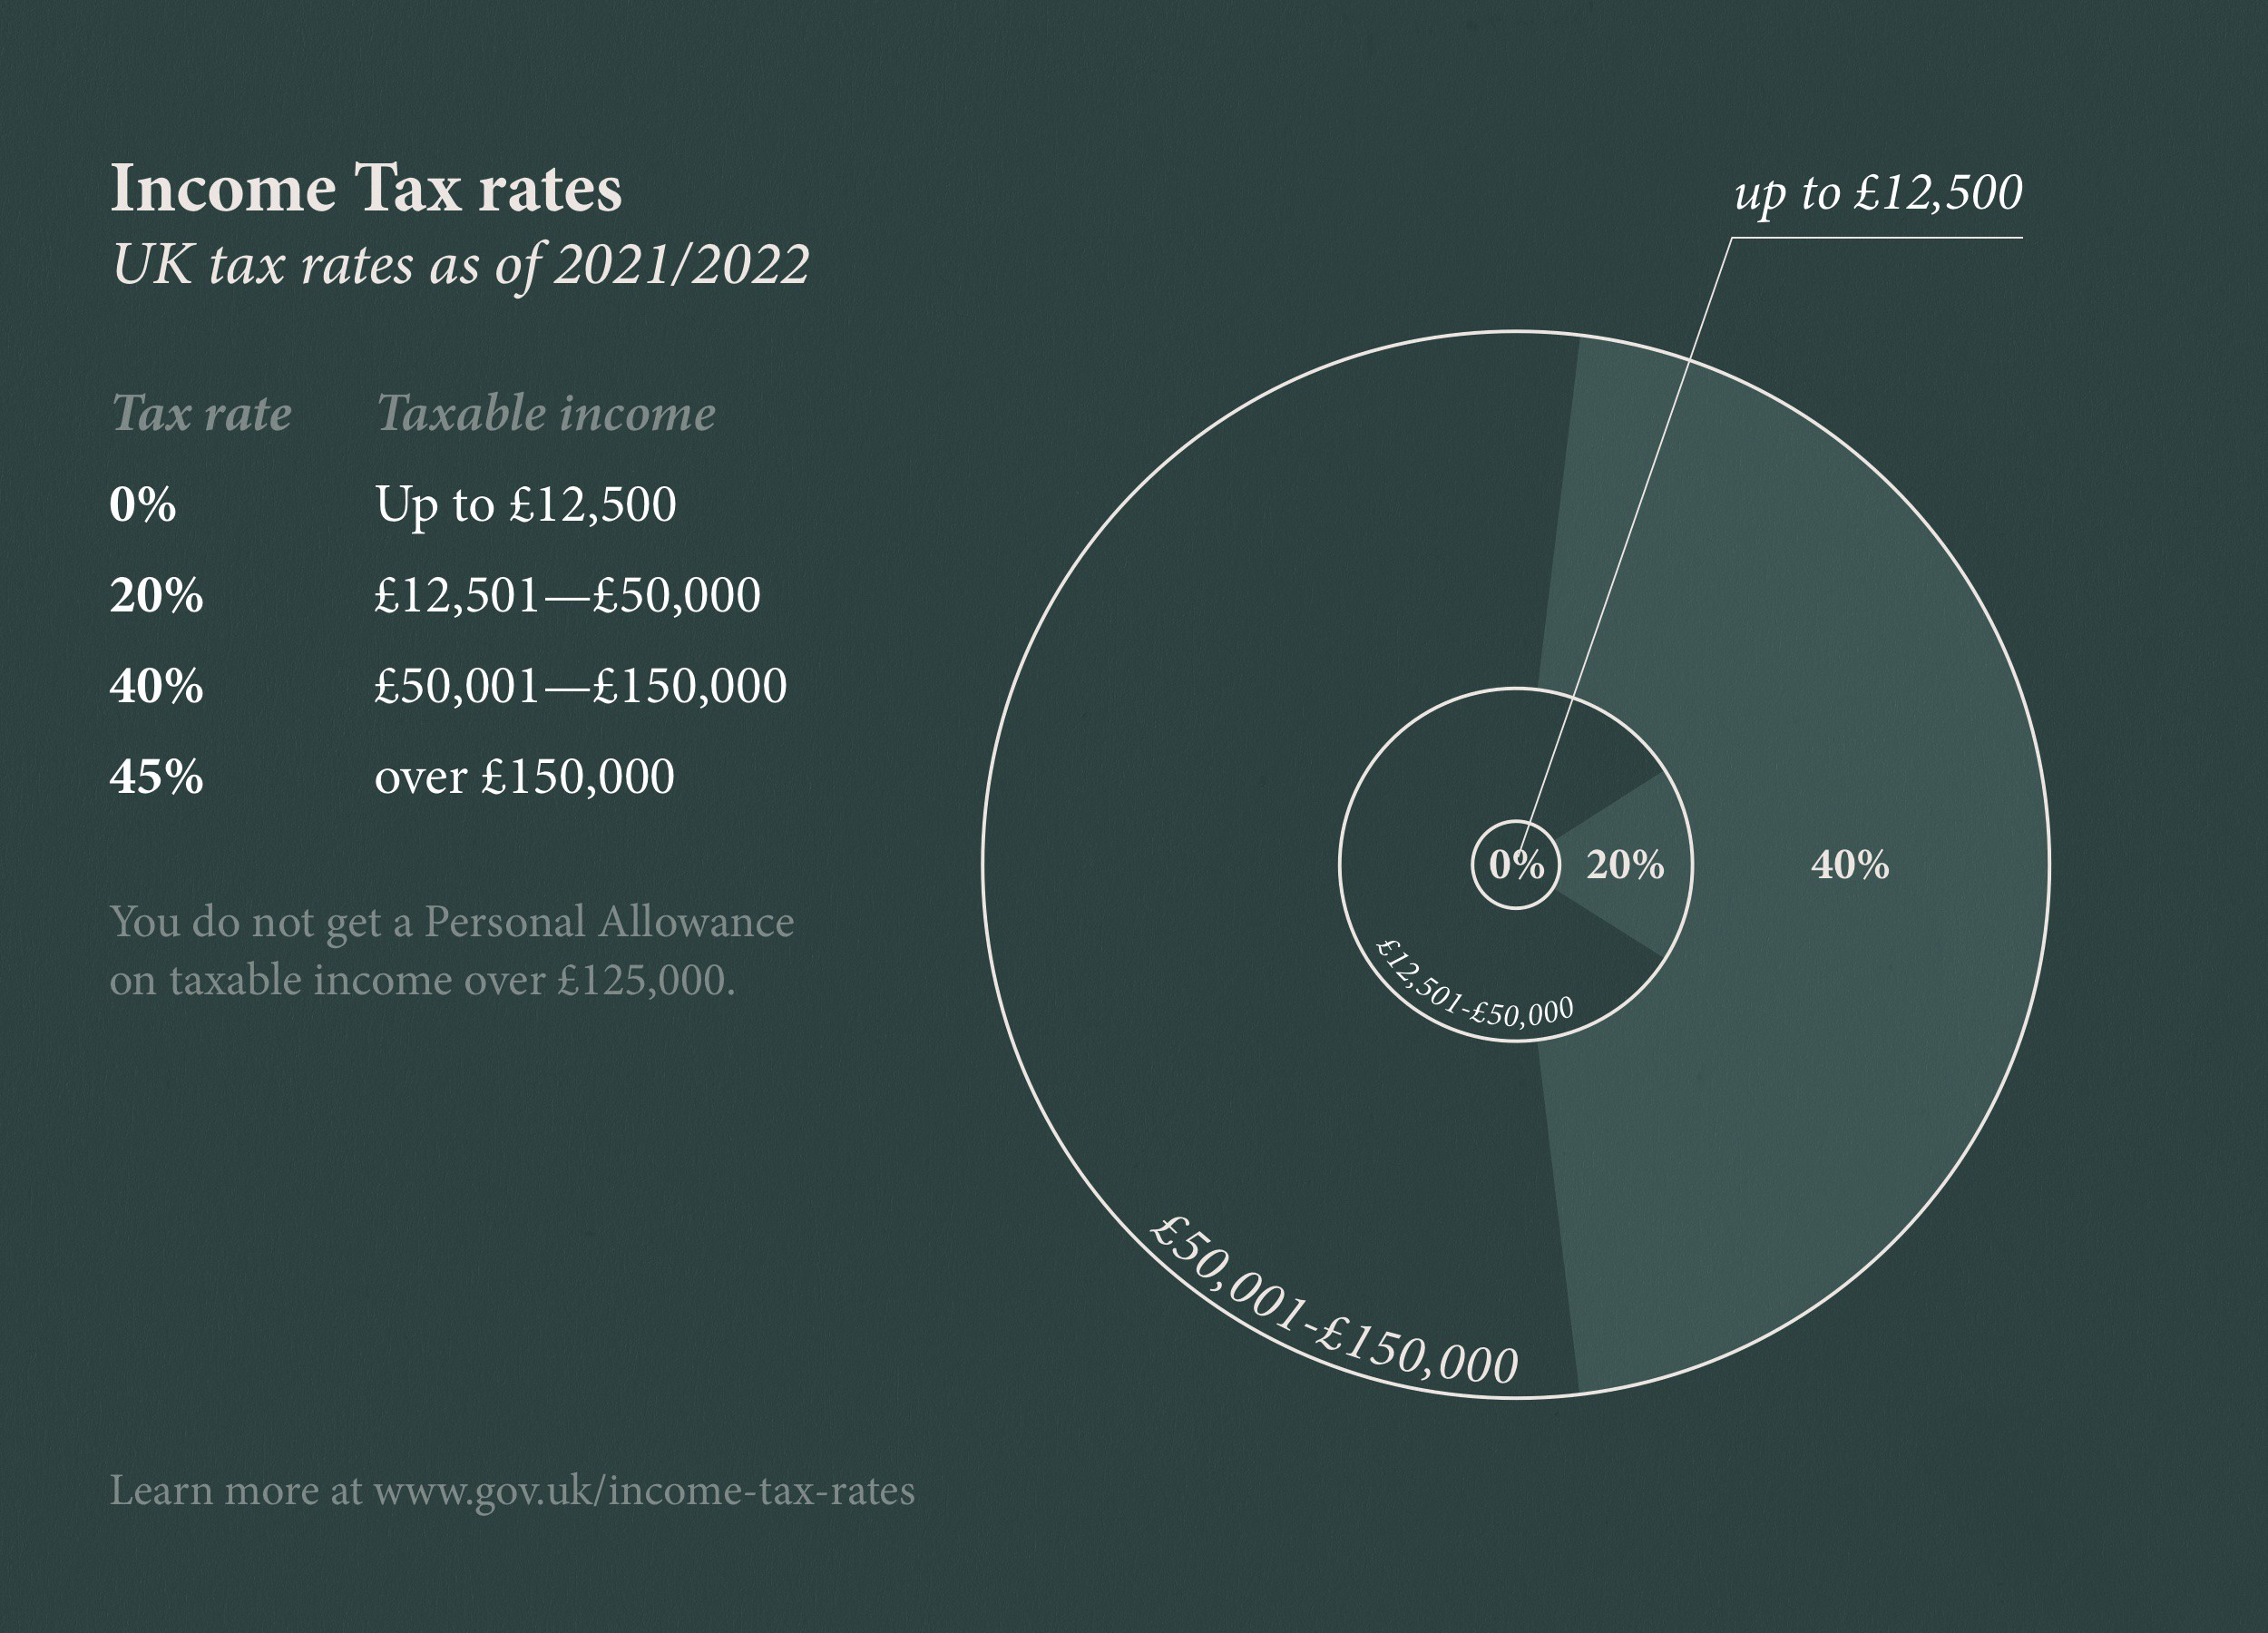 A graph with UK Income Tax Rates